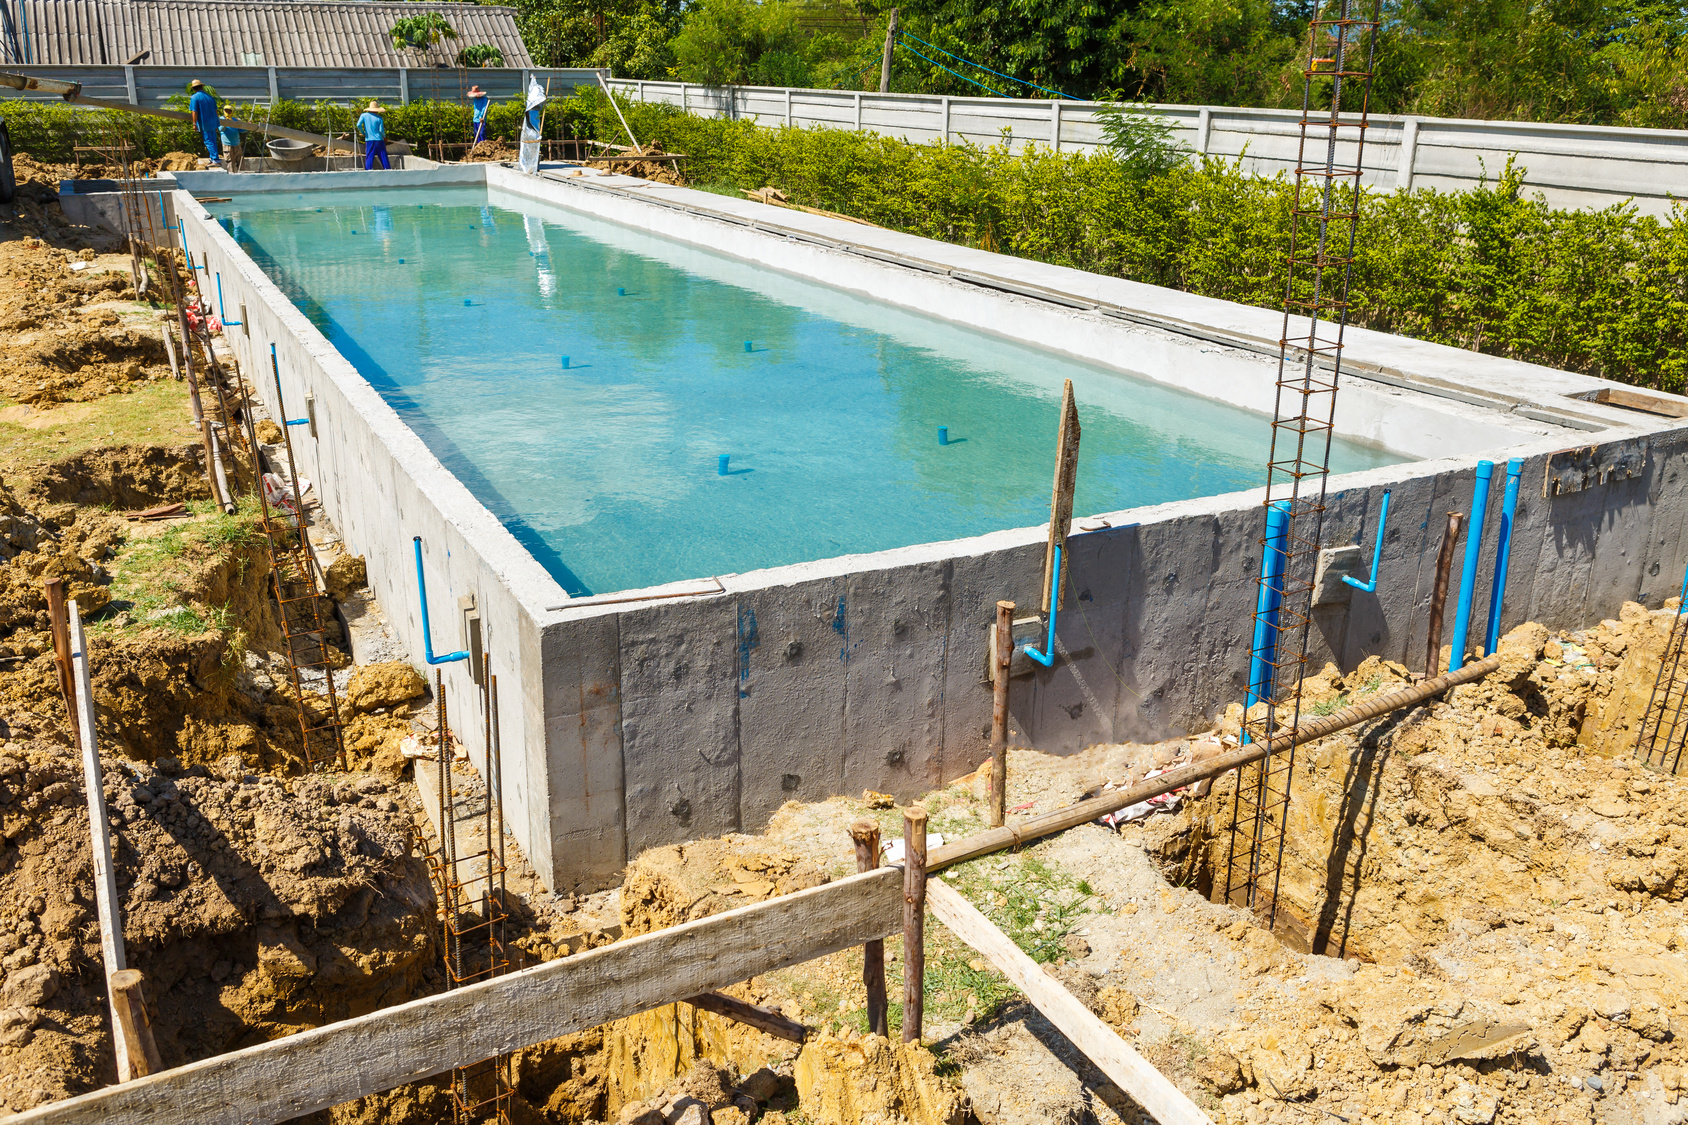 Construire une piscine b ton traditionnelle en kit for Constructor piscinas